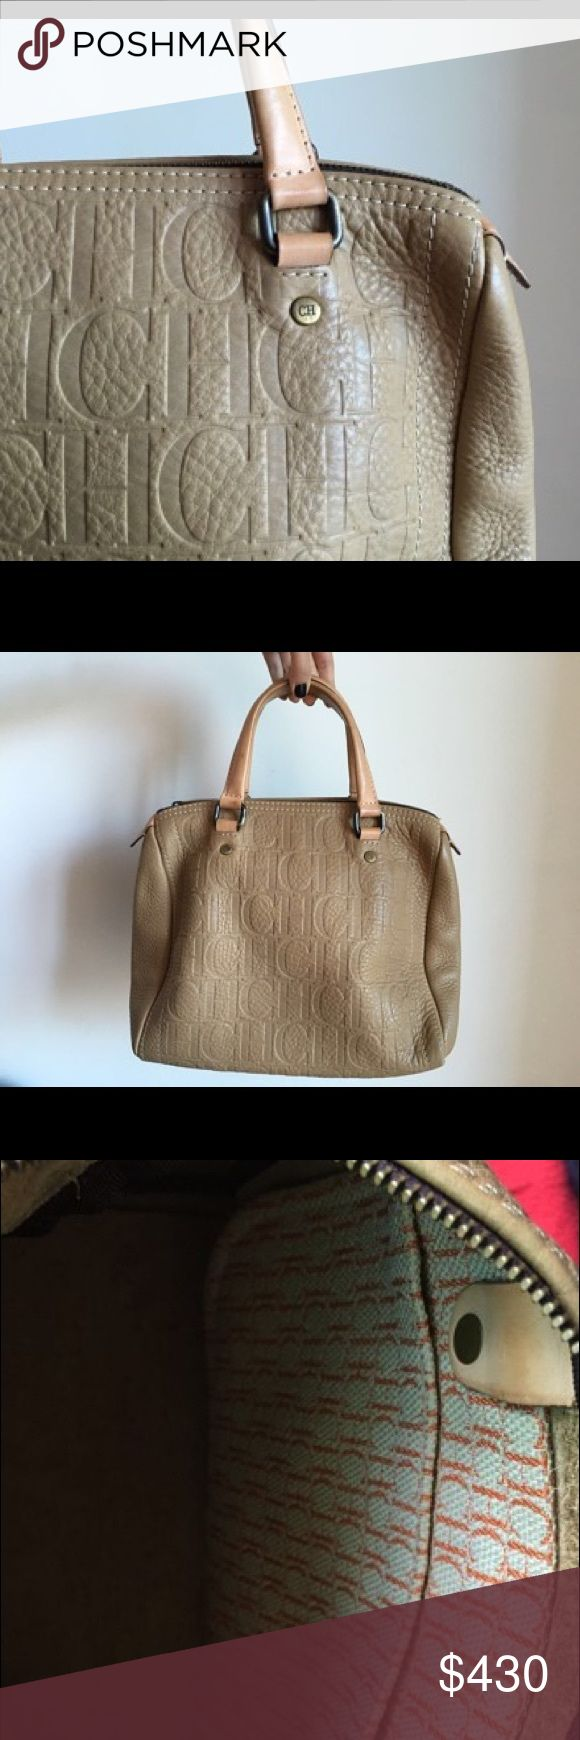 Carolina Herrera Andy Boston Nude Satchel Like new. This item may have been worn but has no visible signs of wear. Carolina Herrera Bags Satchels